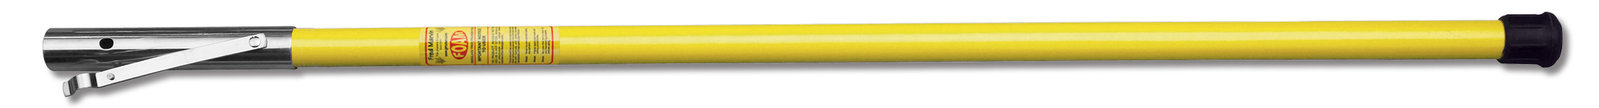 Fred Marvin Foam Filled Fiberglass Pole